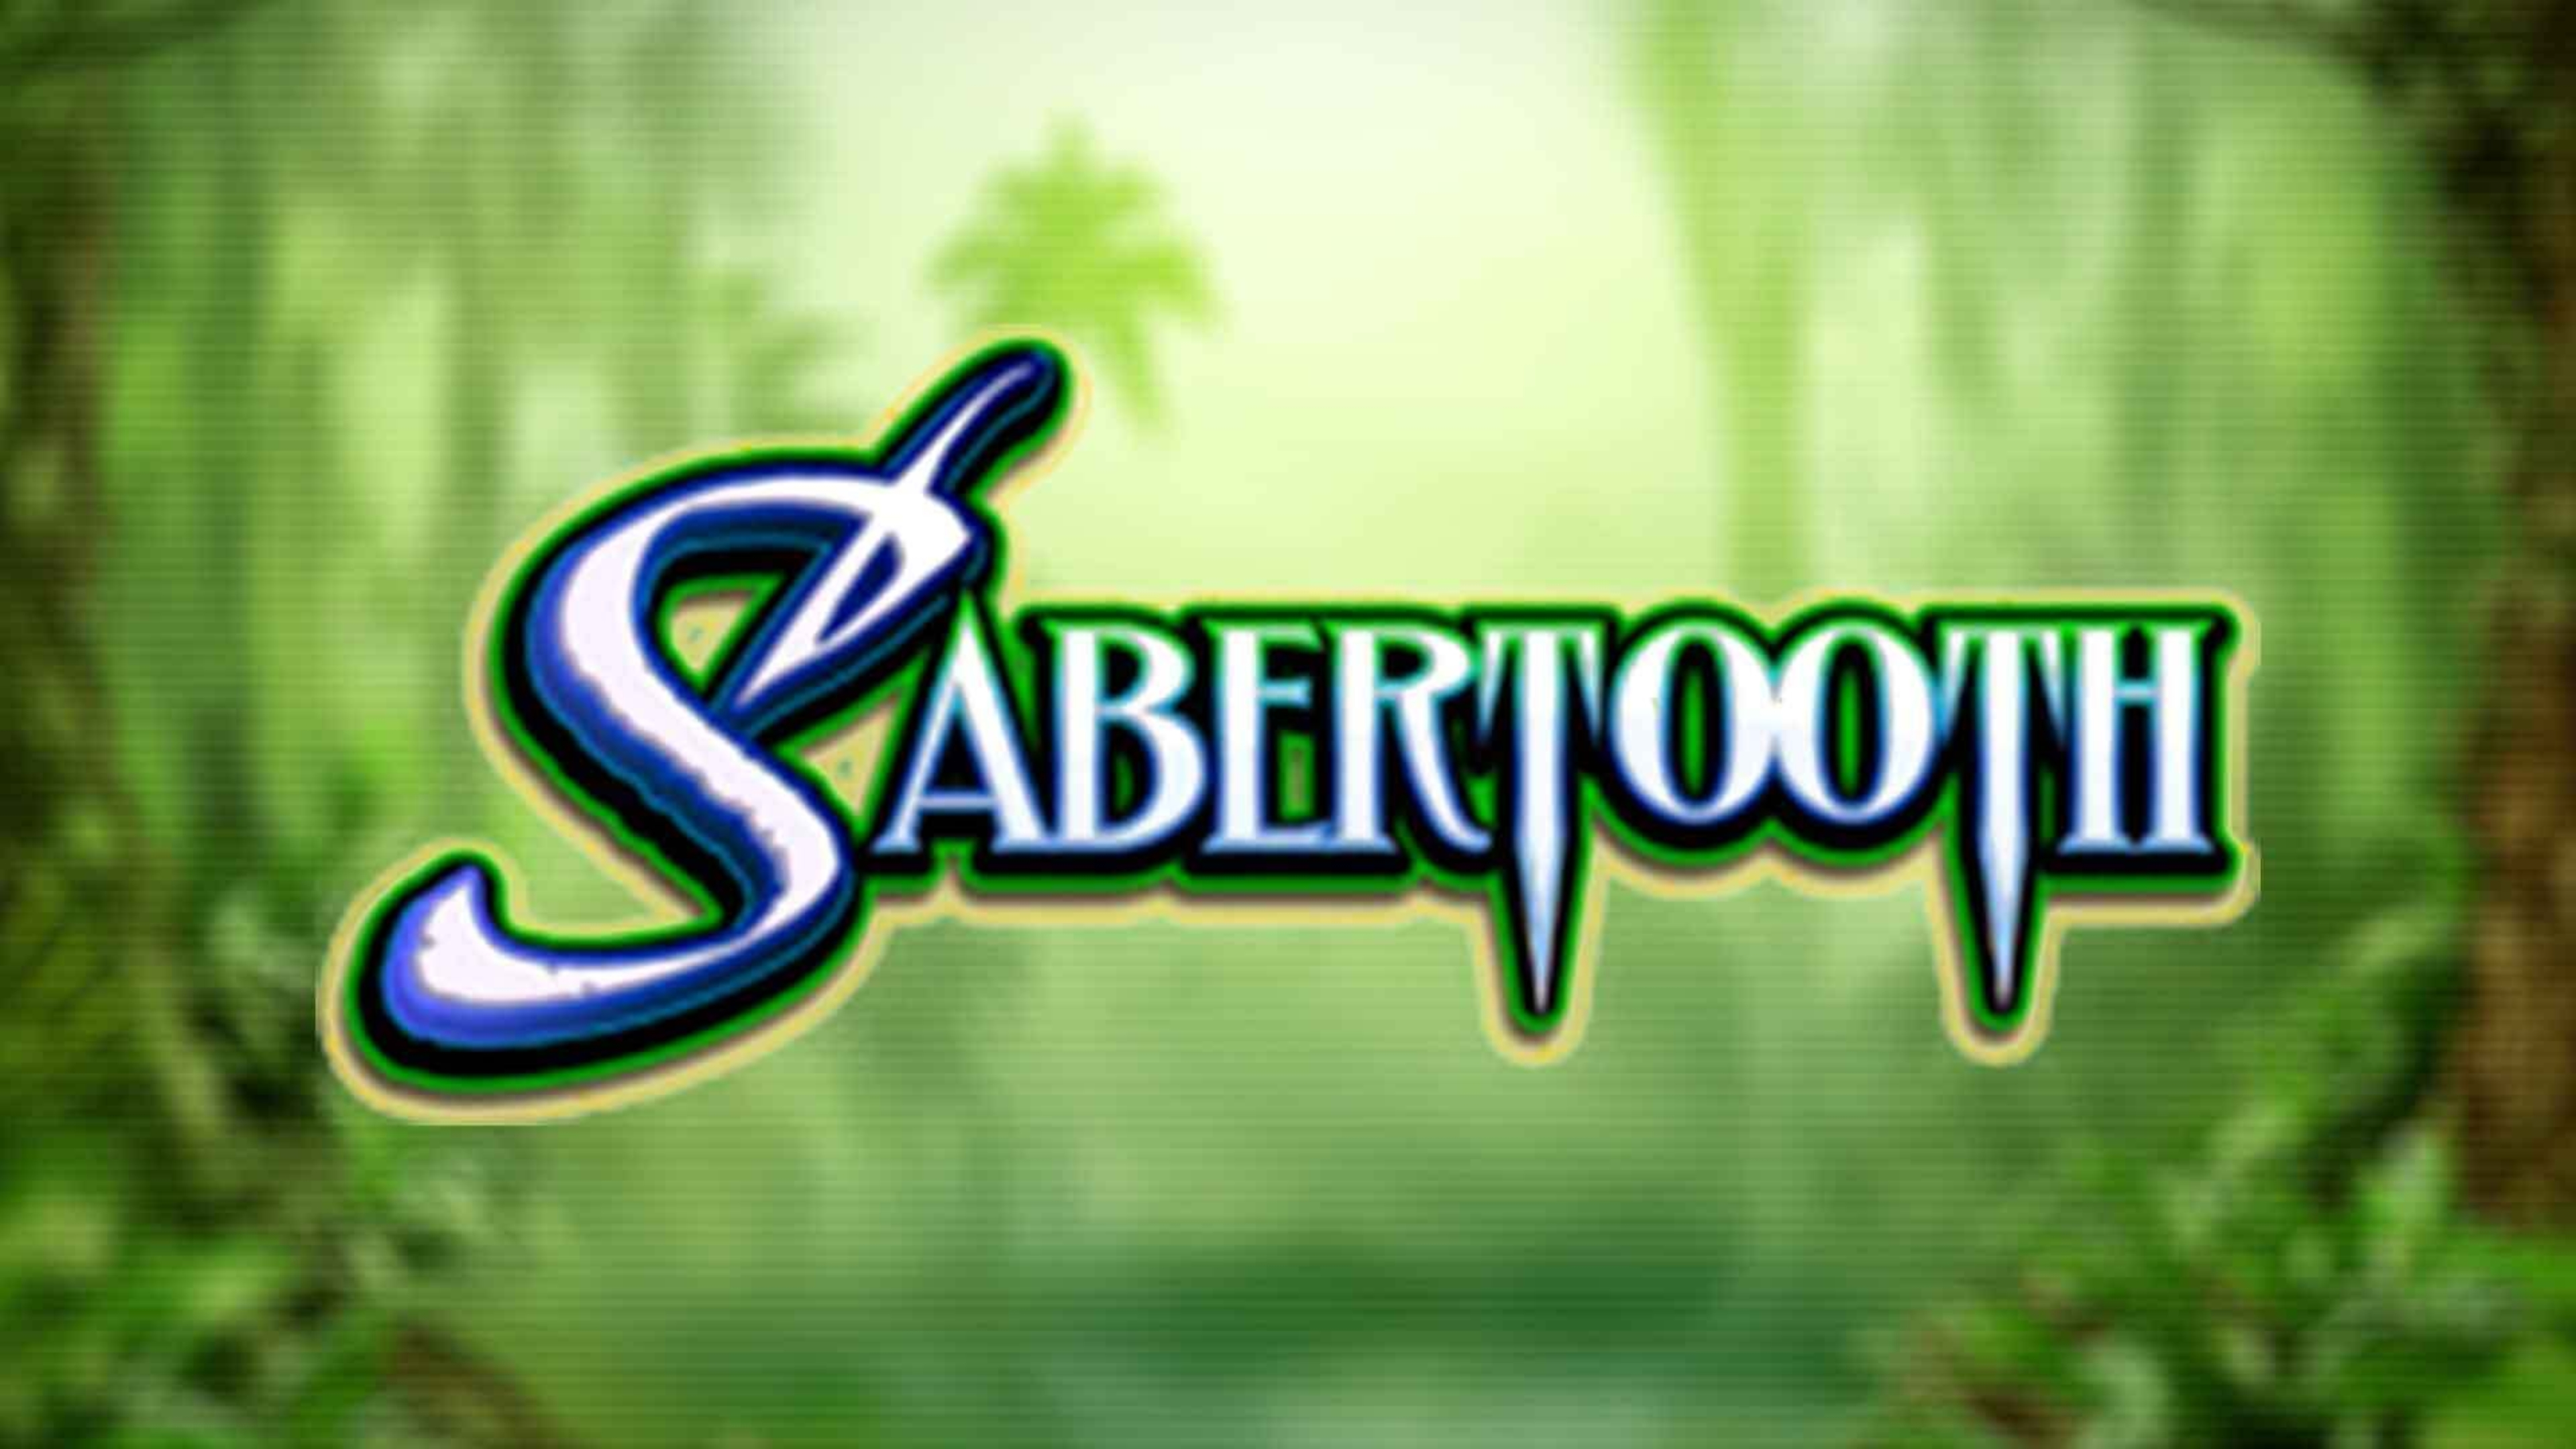 Sabertooth Online Slot Demo Game by WMS